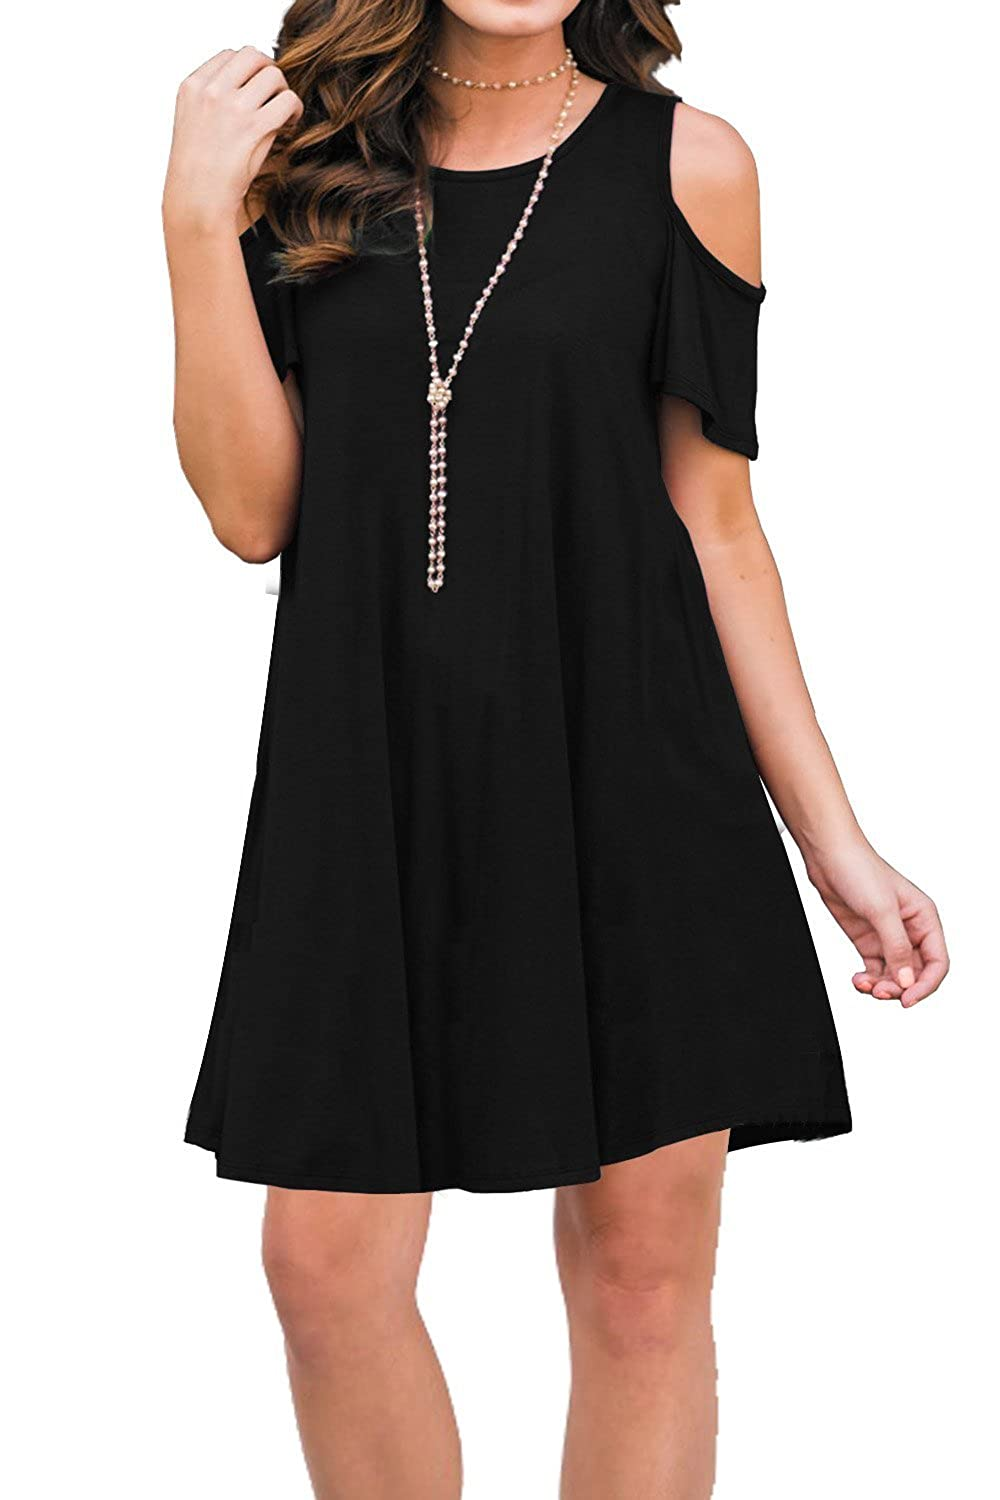 Unidear Womens Cold Shoulder Tunic Top Short Sleeve Round Neck Casual T Shirt